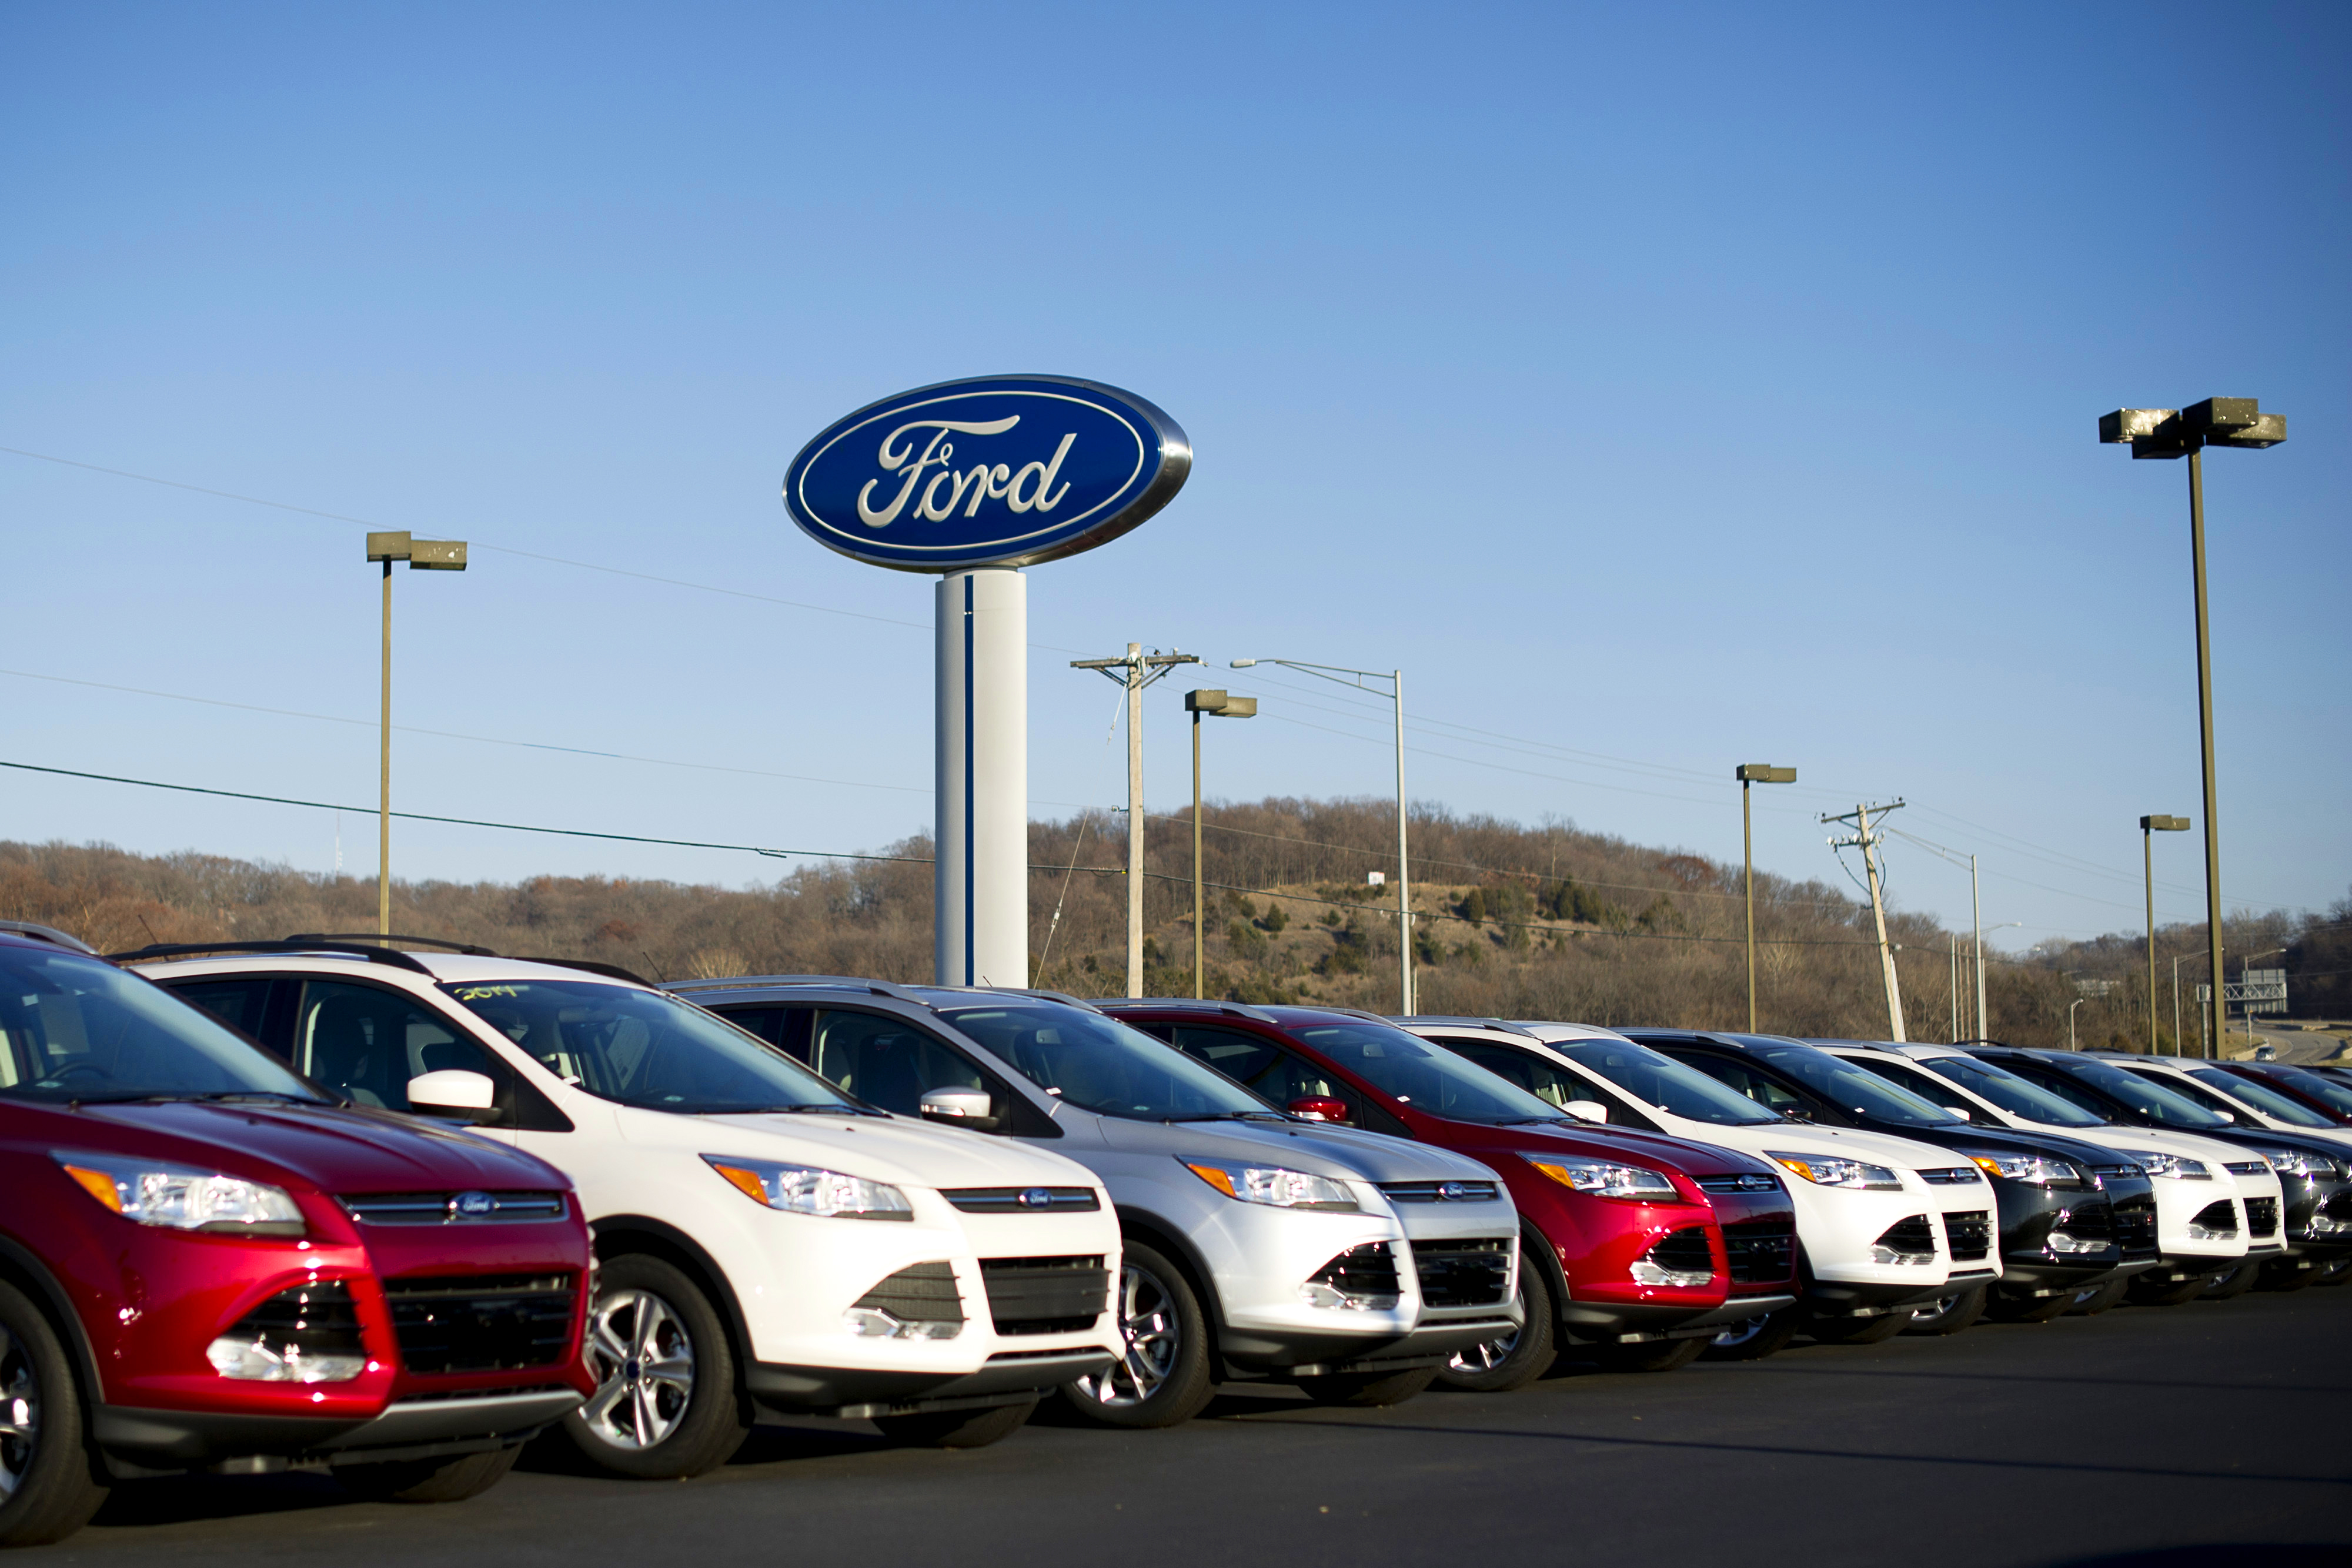 ford s sims uses data to predict which cars will sell